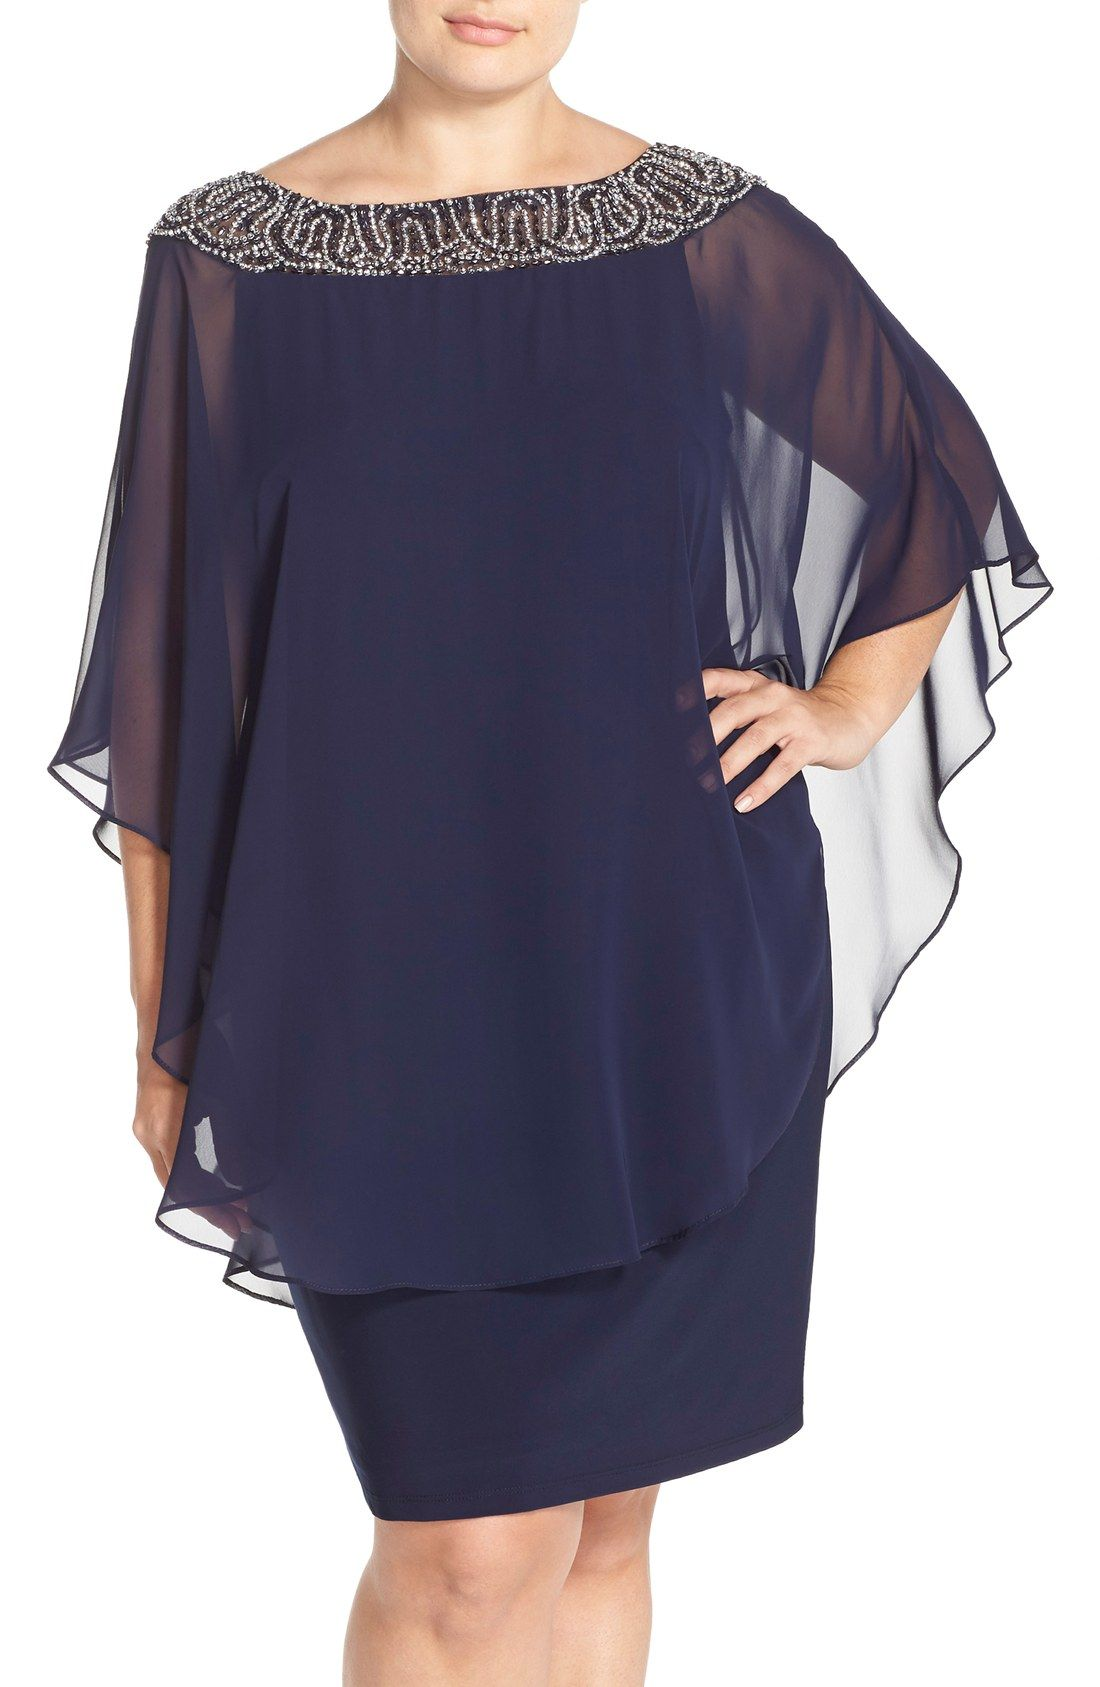 04d14e2a8ad5 Free shipping and returns on Xscape Embellished Chiffon Overlay Jersey  Sheath Dress (Plus Size) at Nordstrom.com. A poncho-inspired chiffon  overlay drapes ...